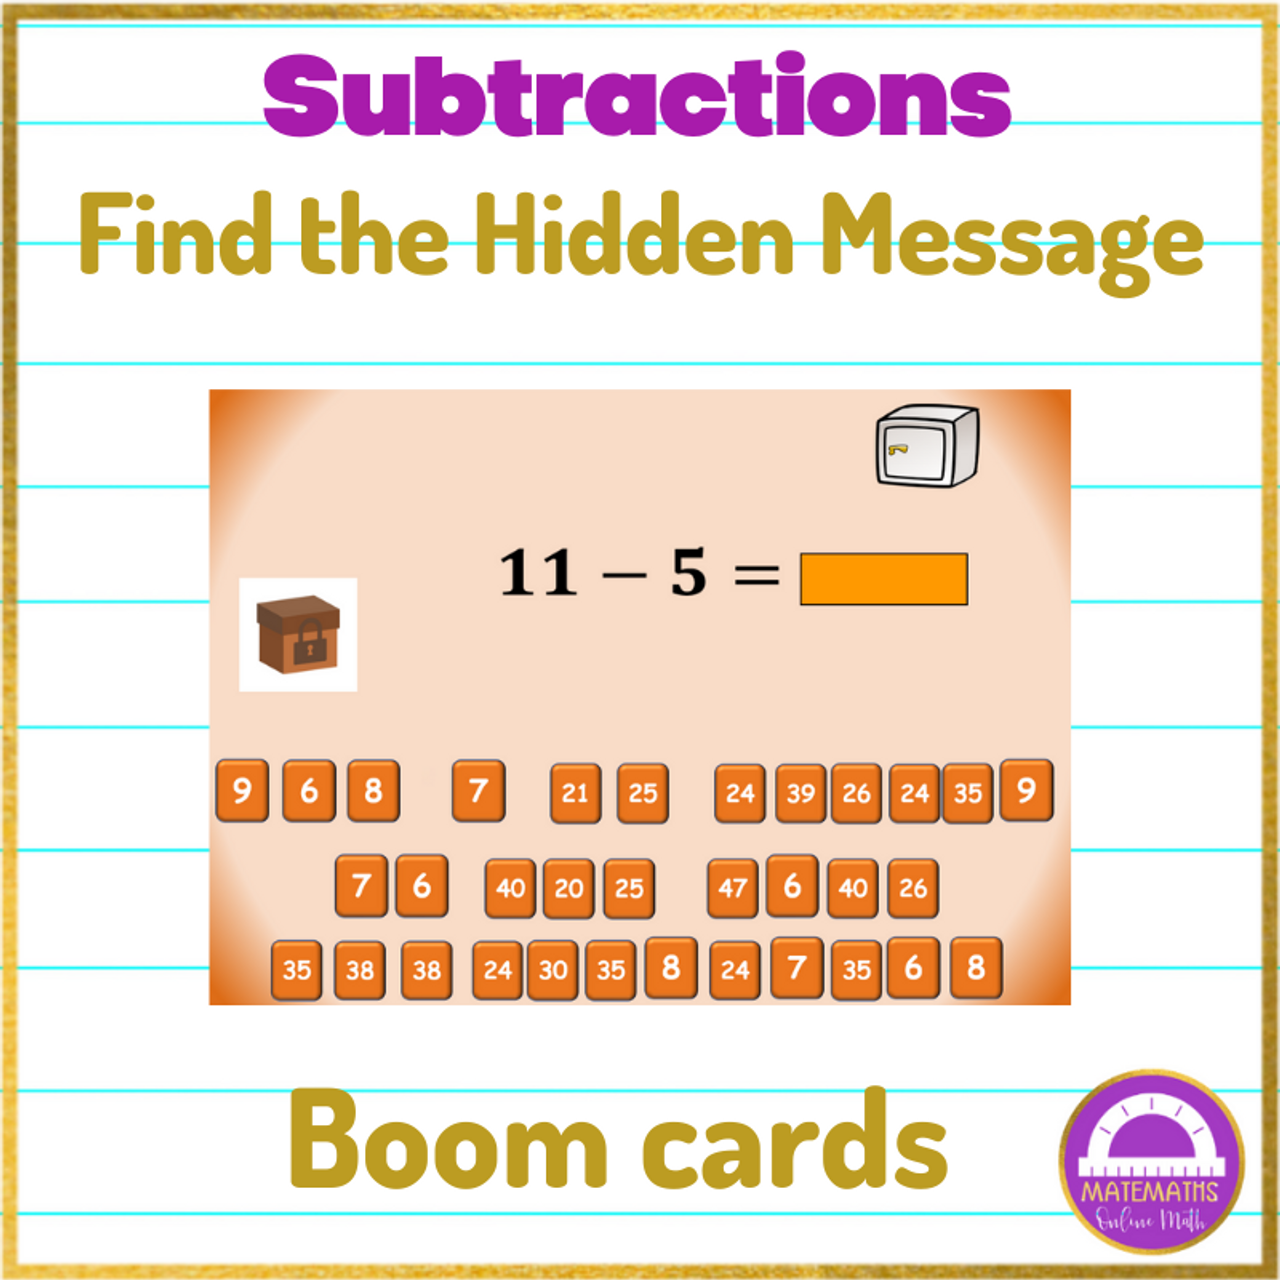 BOOM CARDS Subtraction Activity Find the Hidden Message